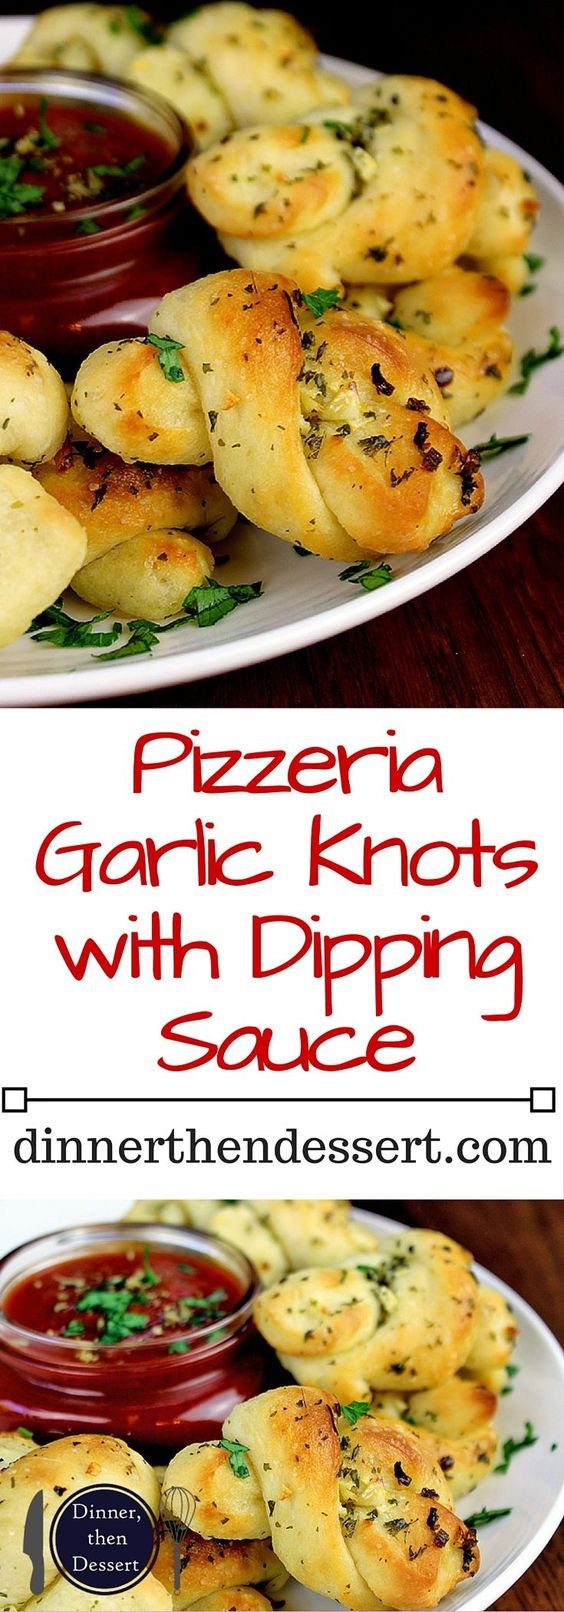 Homemade Pizzeria Garlic Knots with Dipping Sauce! Easy and addictive, so inexpensive to make you'll never order them again!